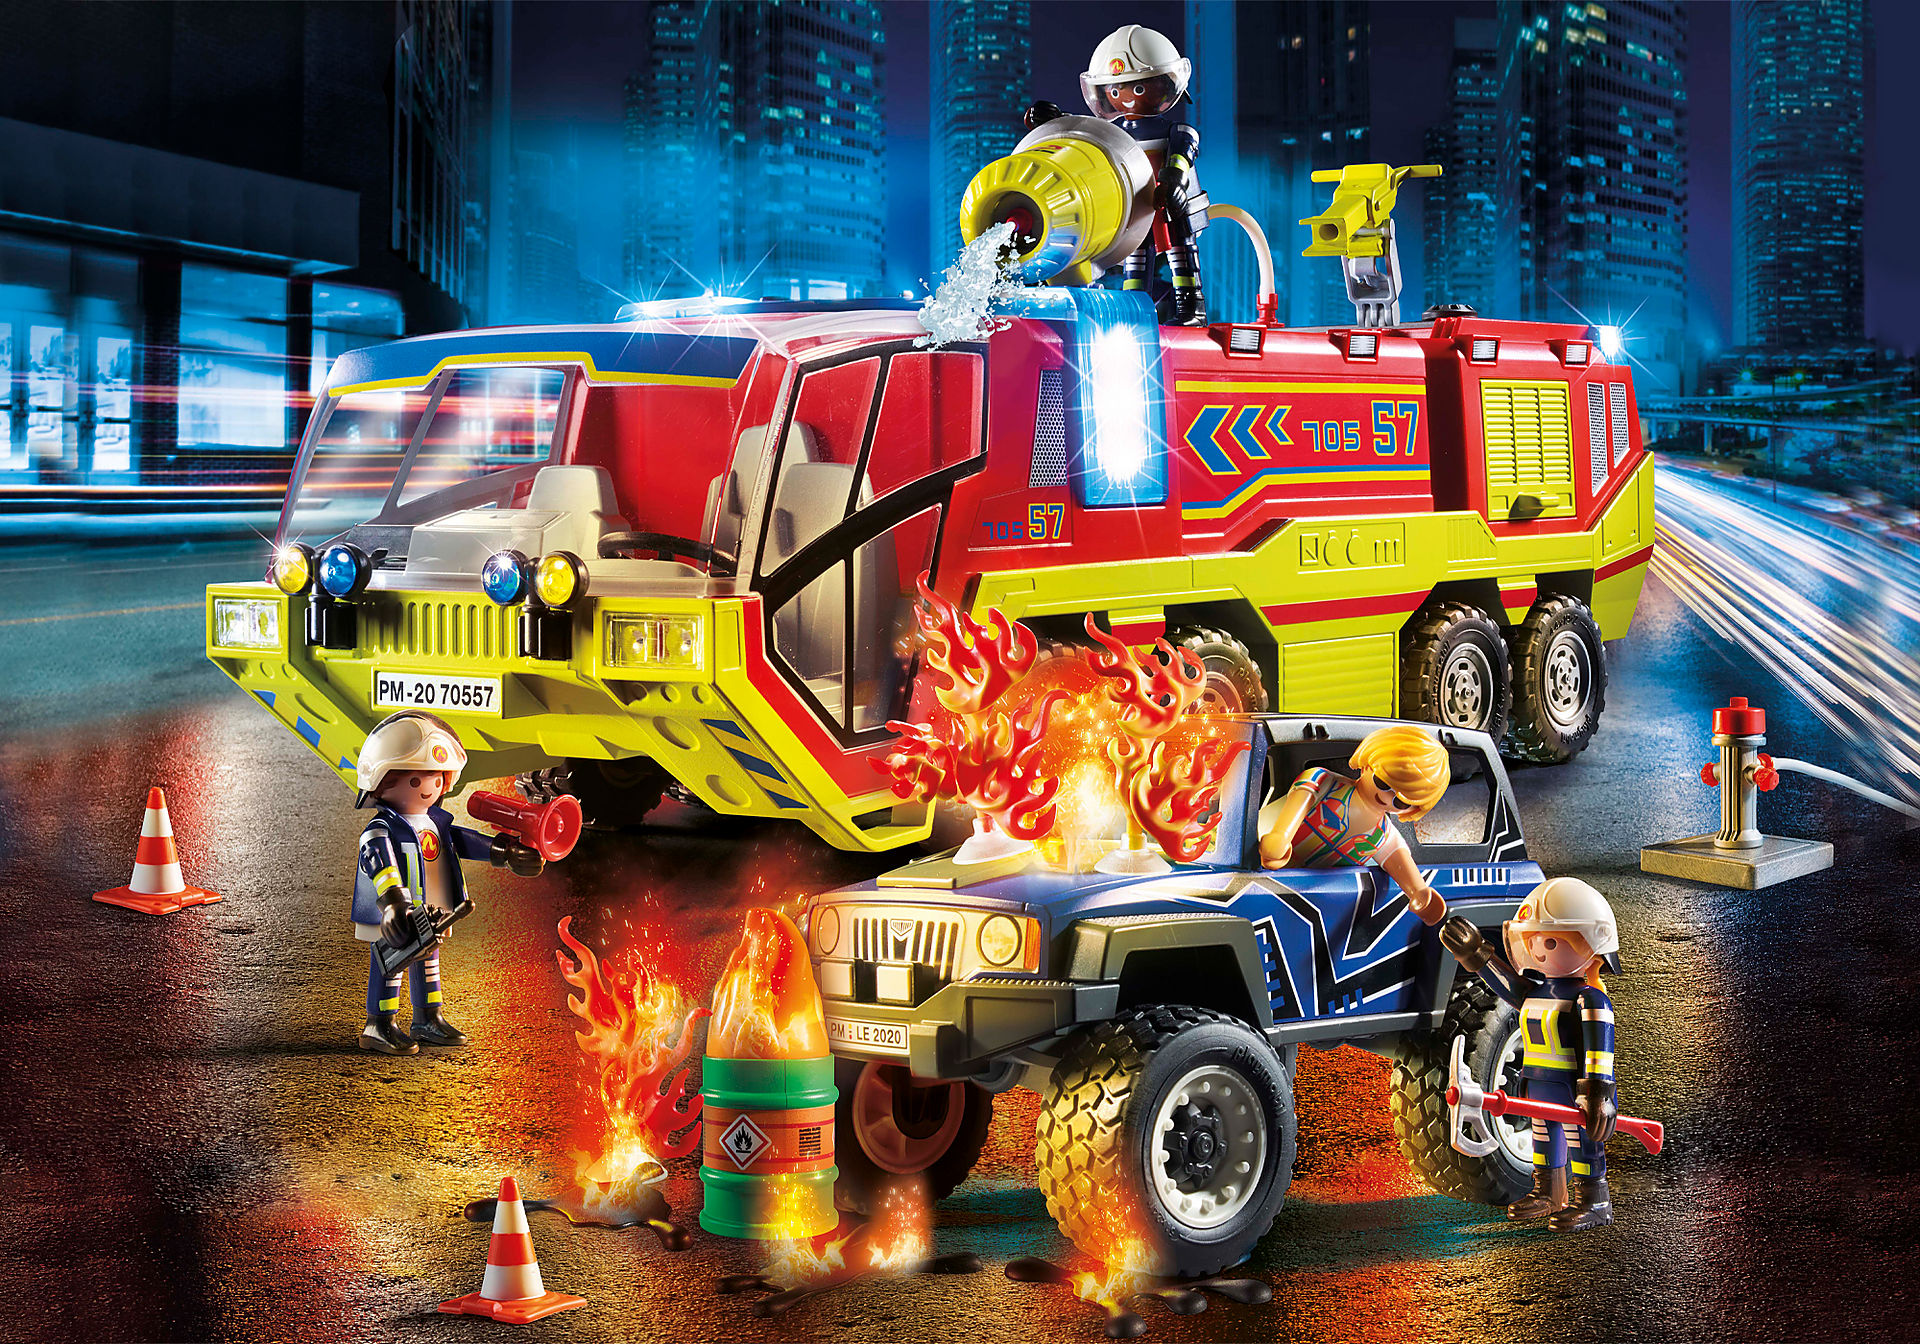 70557 Fire Engine with Truck zoom image1